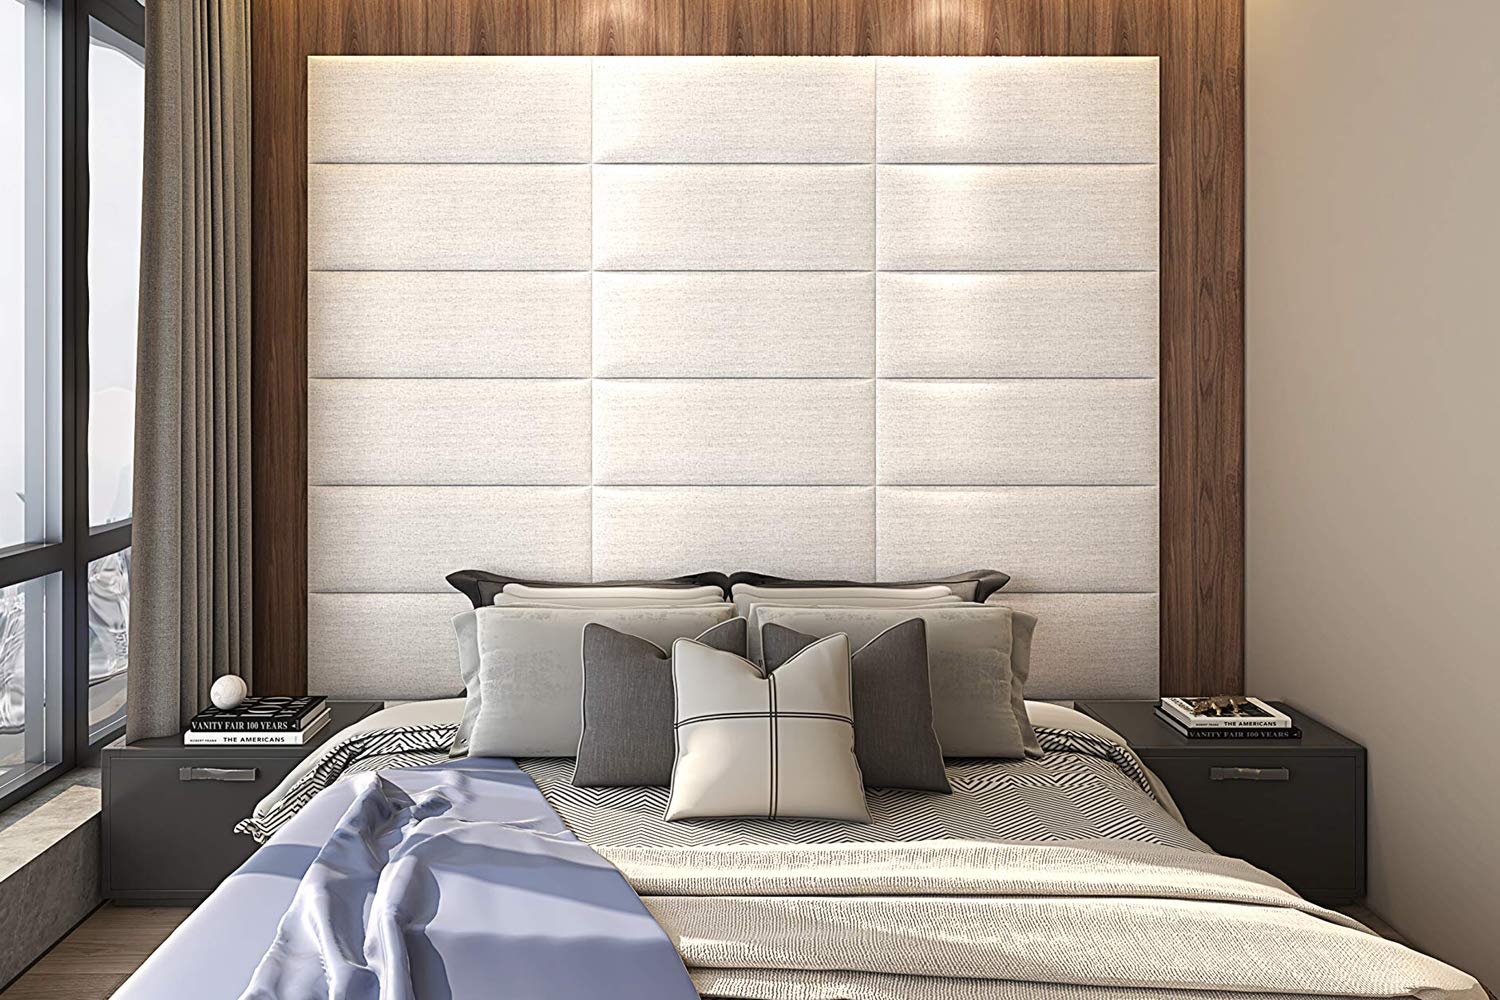 Upholstered Headboard Queen - Set of 8 panels Removable Accent Leather Wall Panels - White 31.5